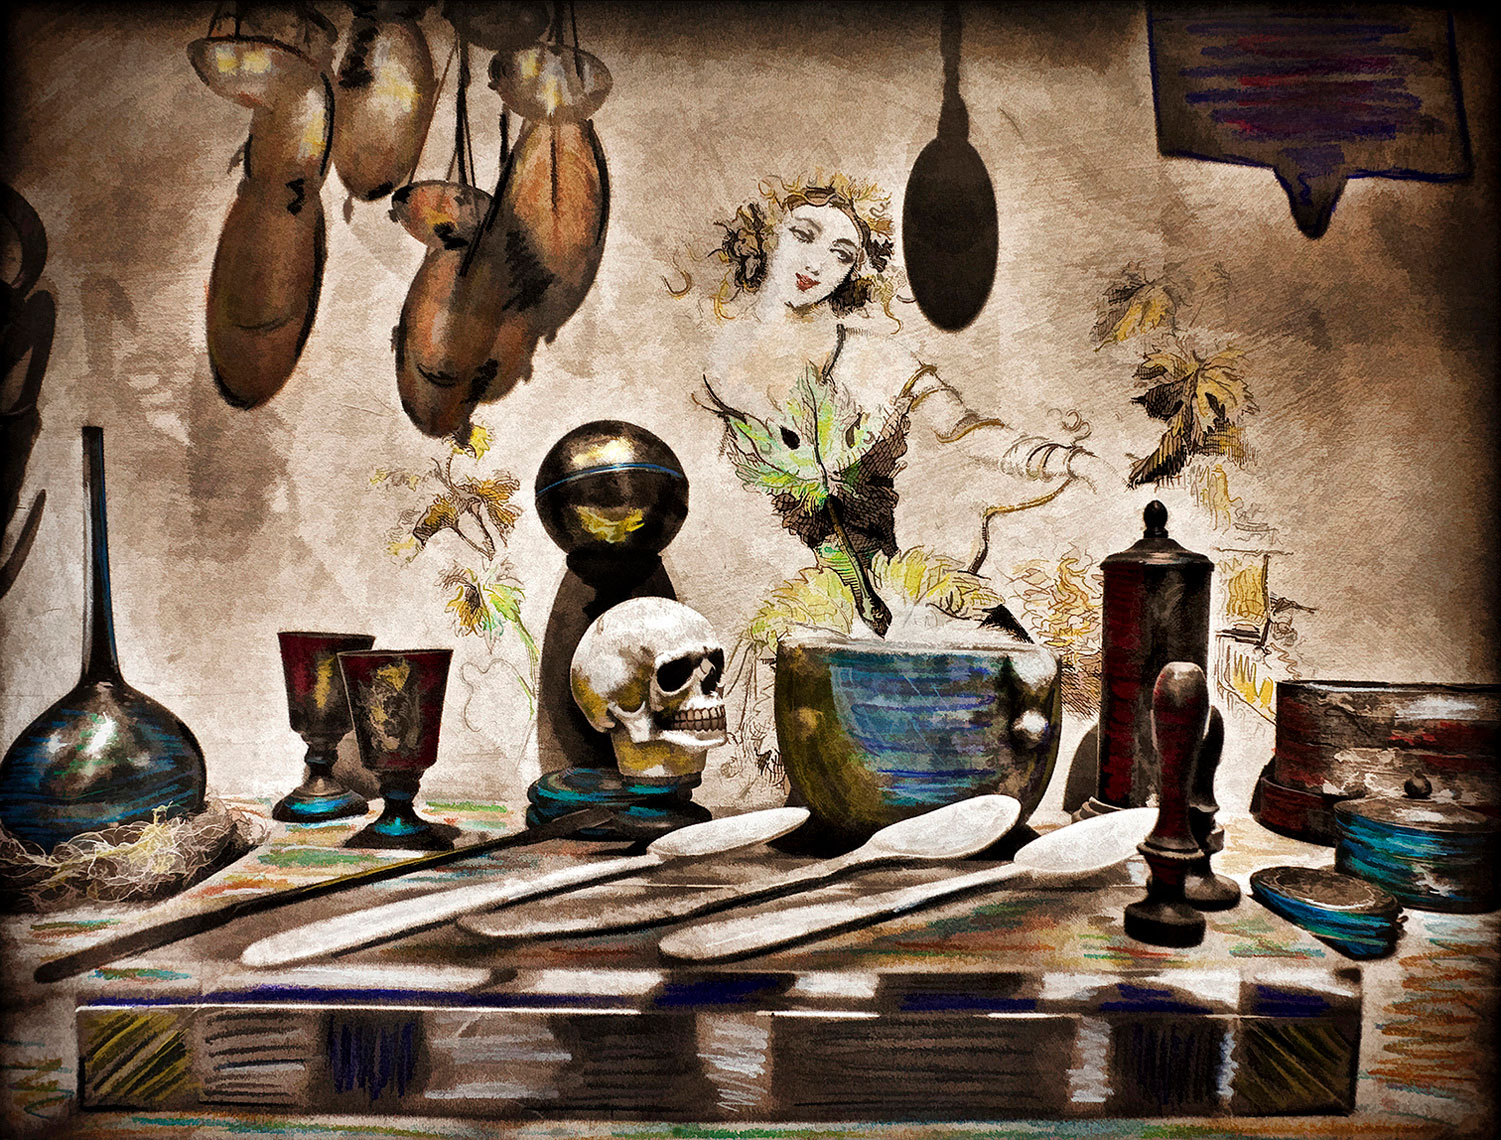 davidhoptman_still-life-photo-still-aboca-etchingbest1Affq